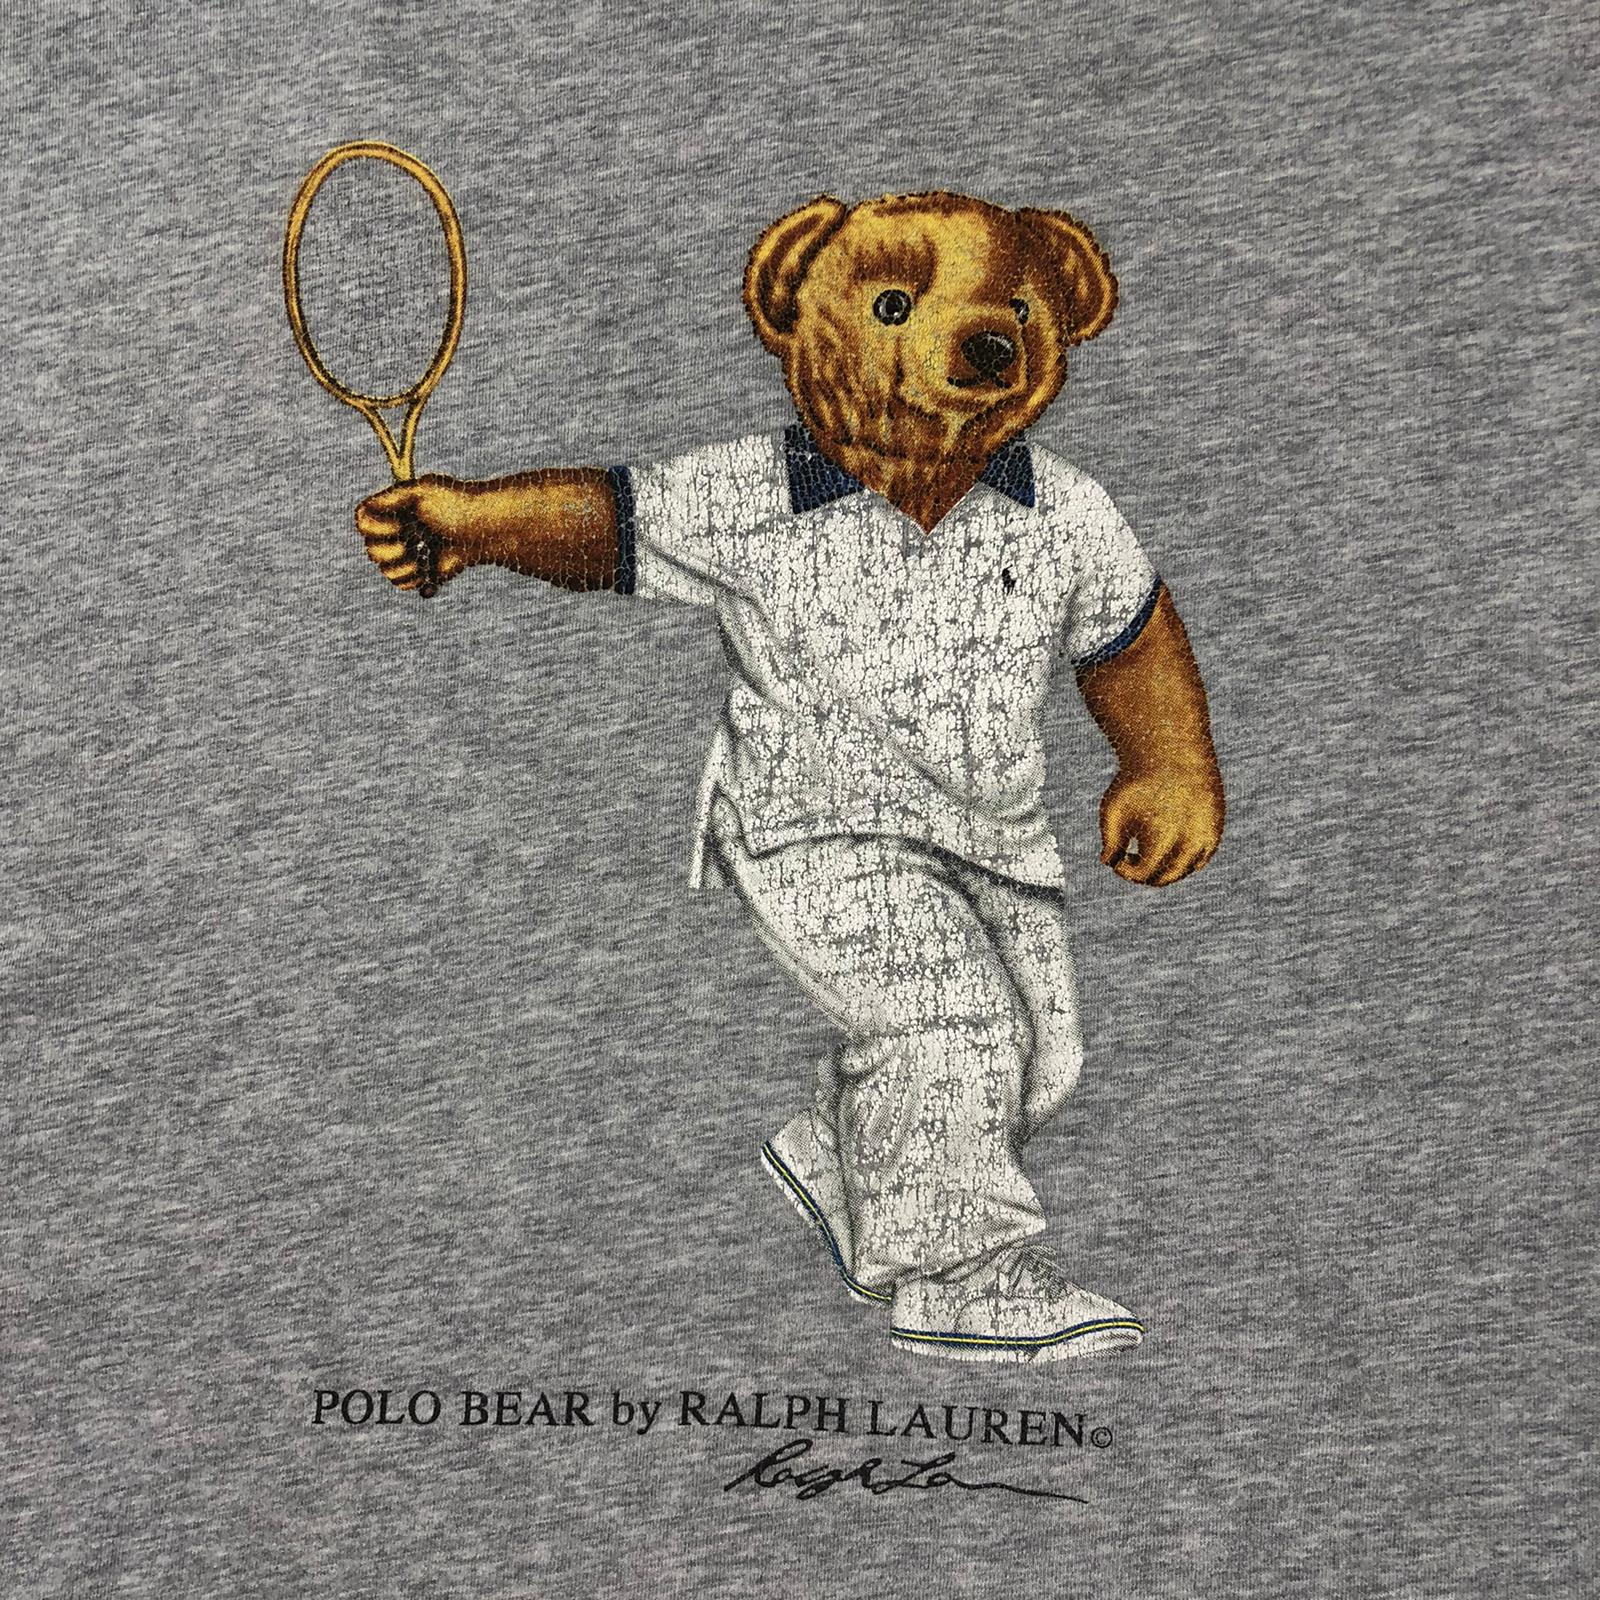 Ralph Lauren POLO Bear t-shirt